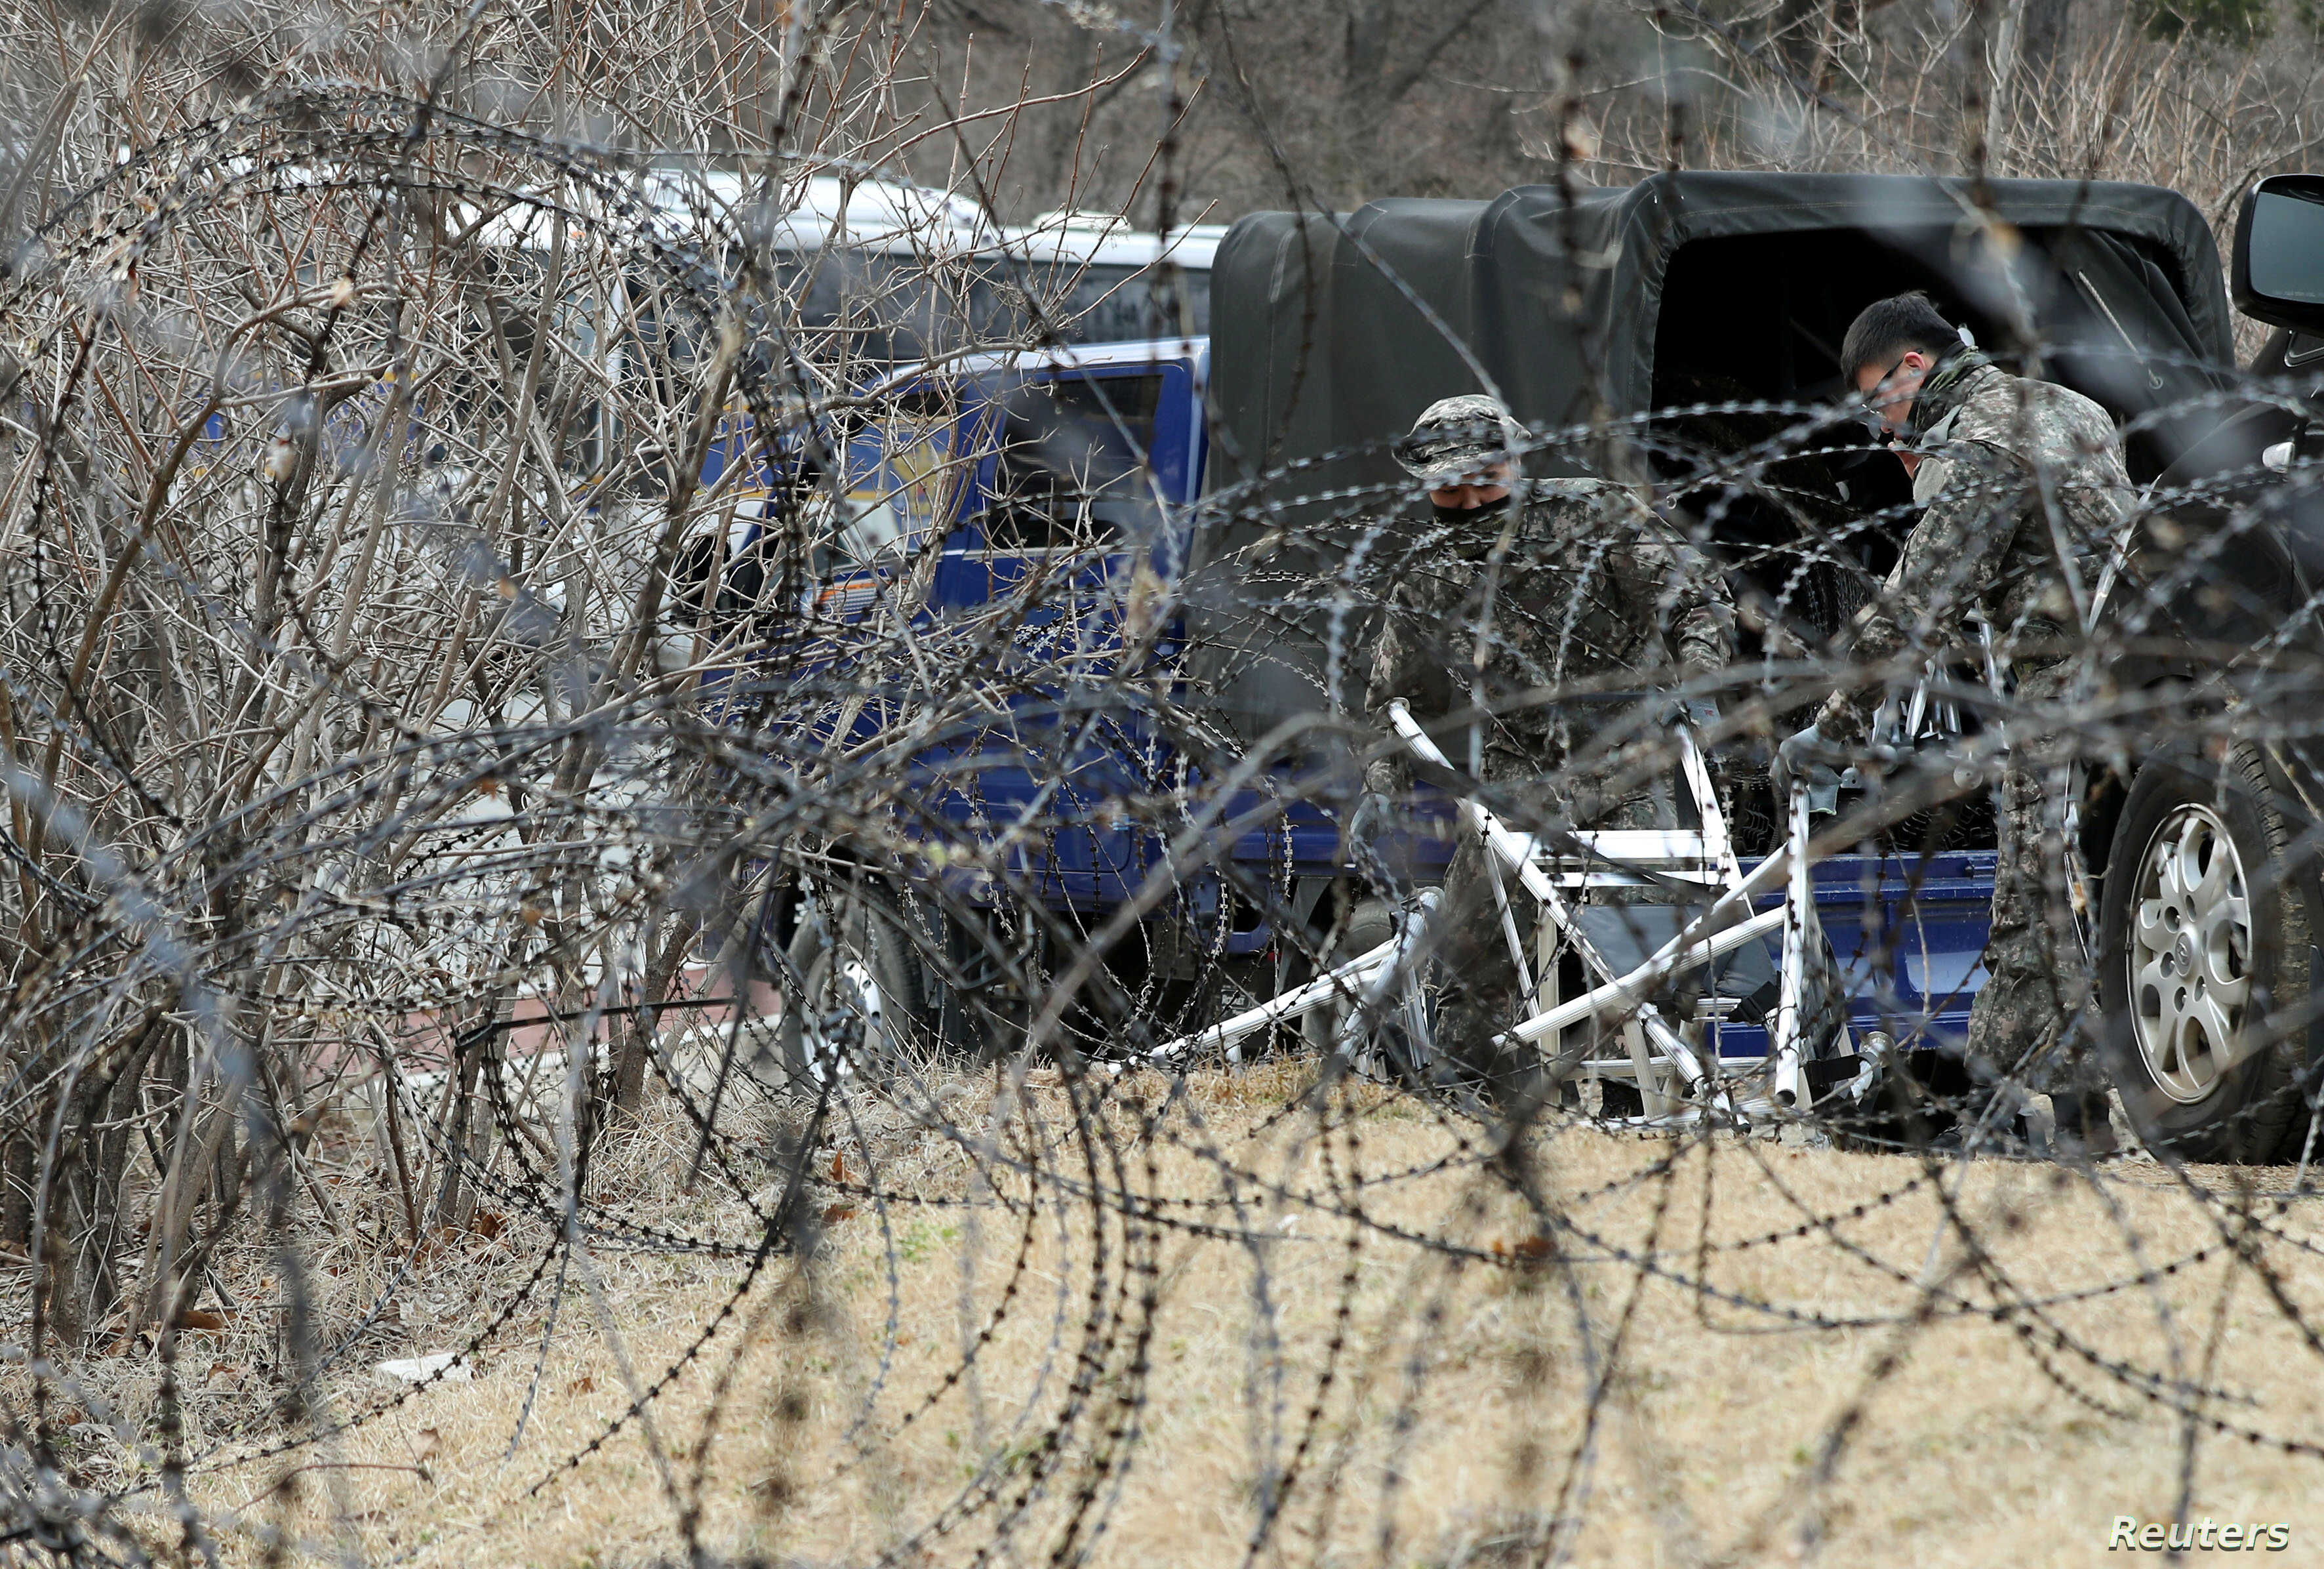 A barbed-wire fence is set up around a golf course owned by Lotte, where the U.S. Terminal High Altitude Area Defense (THAAD) system will be deployed, in Seongju, South Korea, March 1, 2017.